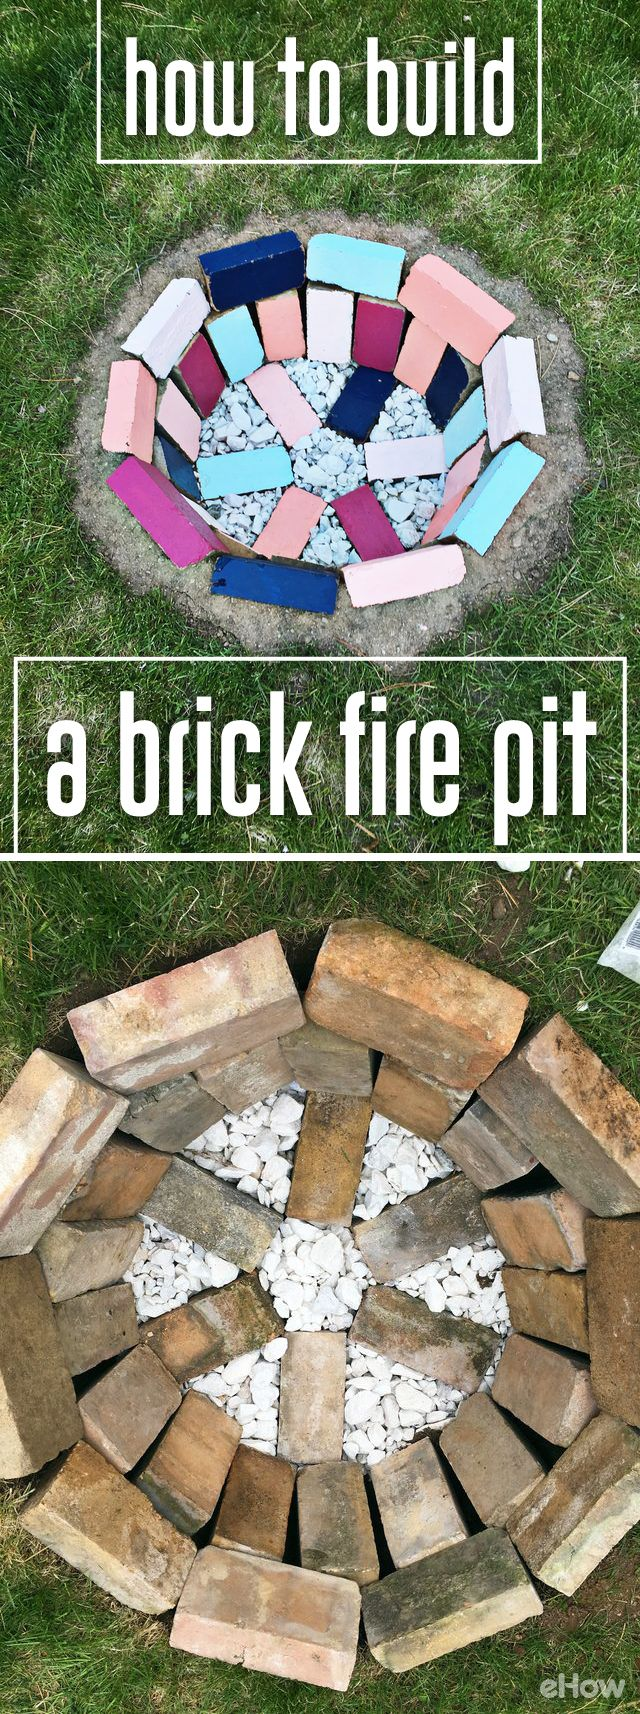 DIY a brick fire pit in your backyard safely and available  for cool night making s'mores and sipping drinks! http://www.ehow.com/how_5017121_make-fire-pit-out-bricks.html?utm_source=pinterest.com&utm_medium=referral&utm_content=freestyle&utm_campaign=fanpage